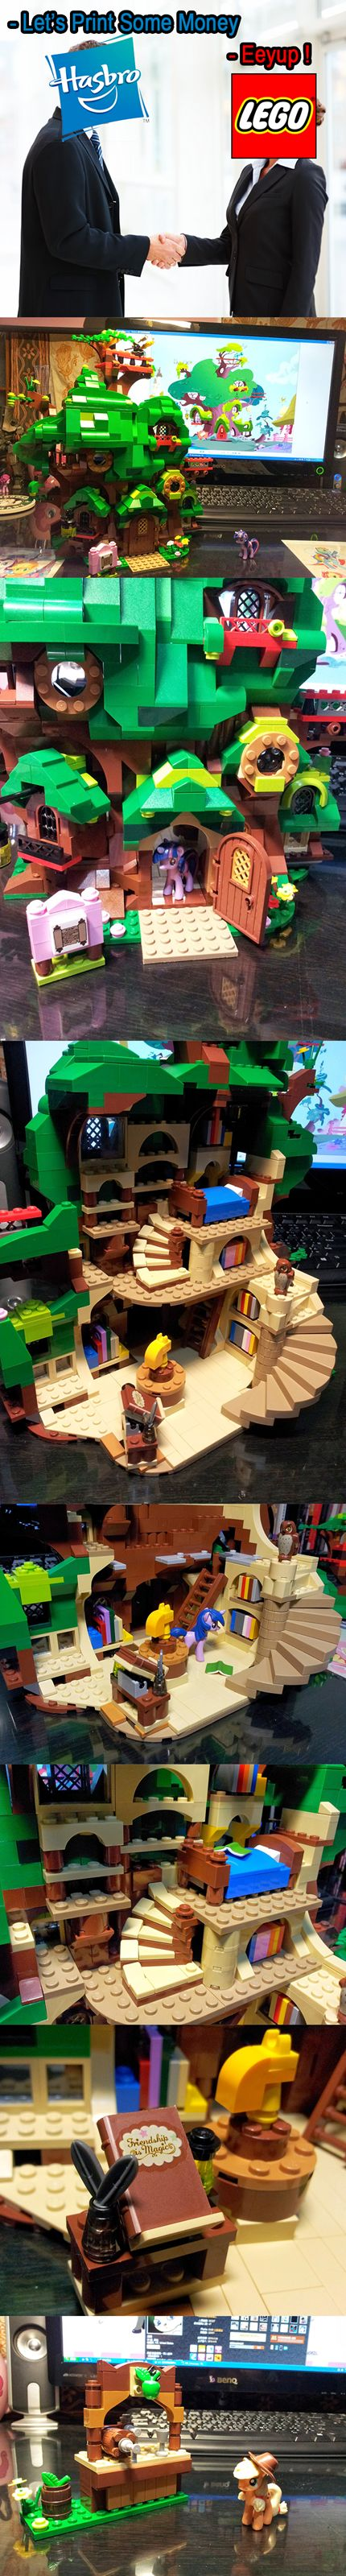 Hasbro,This Is How You Sell Toys. These small MLPs are perfectly compatible with Lego constructs, especially the Lego Friends buildings.